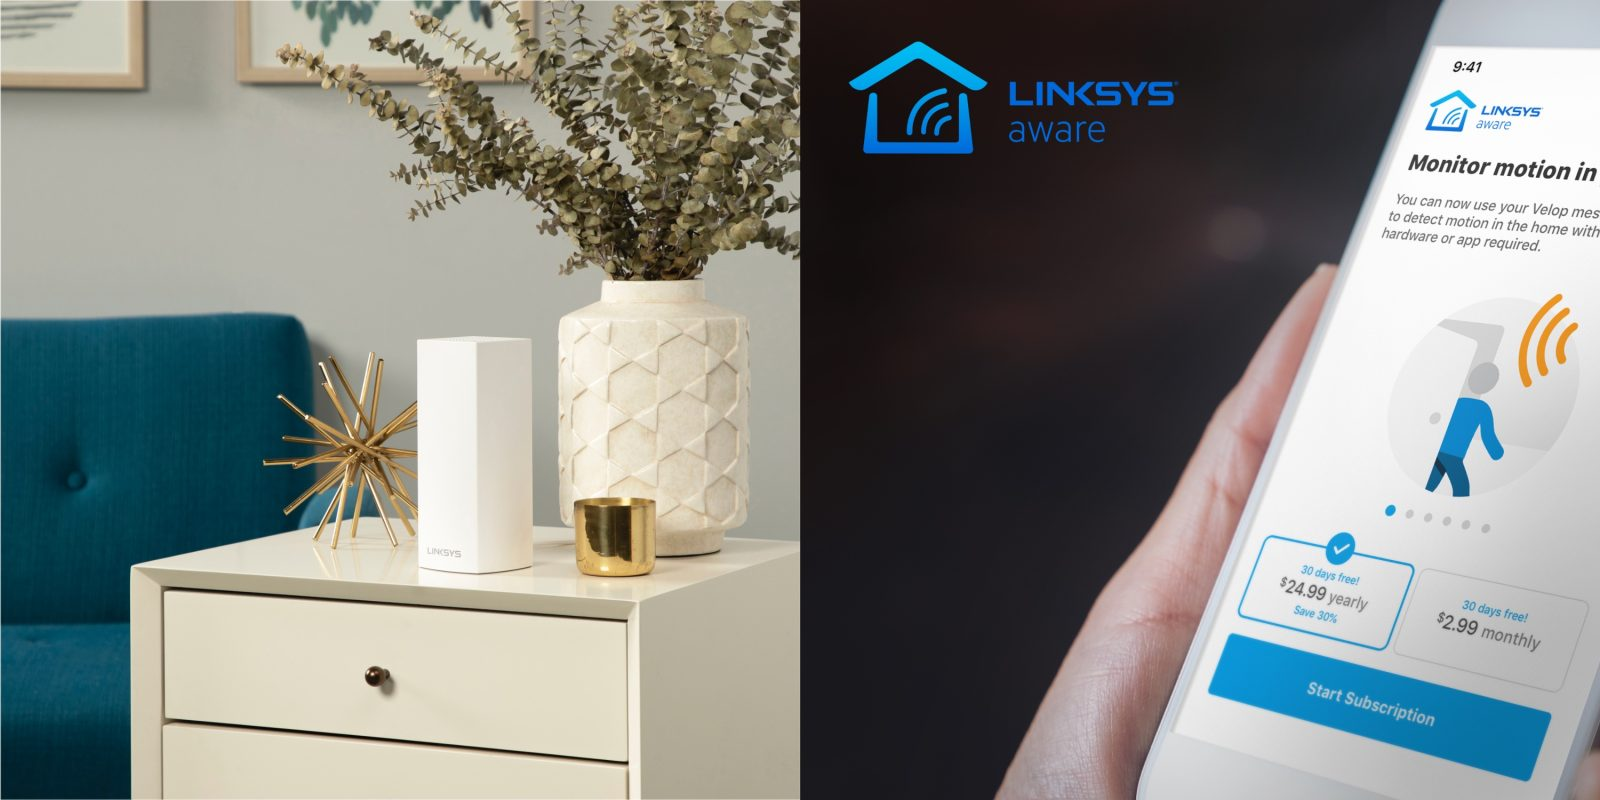 Linksys mesh routers offer whole home motion sensing w/o additional hardware